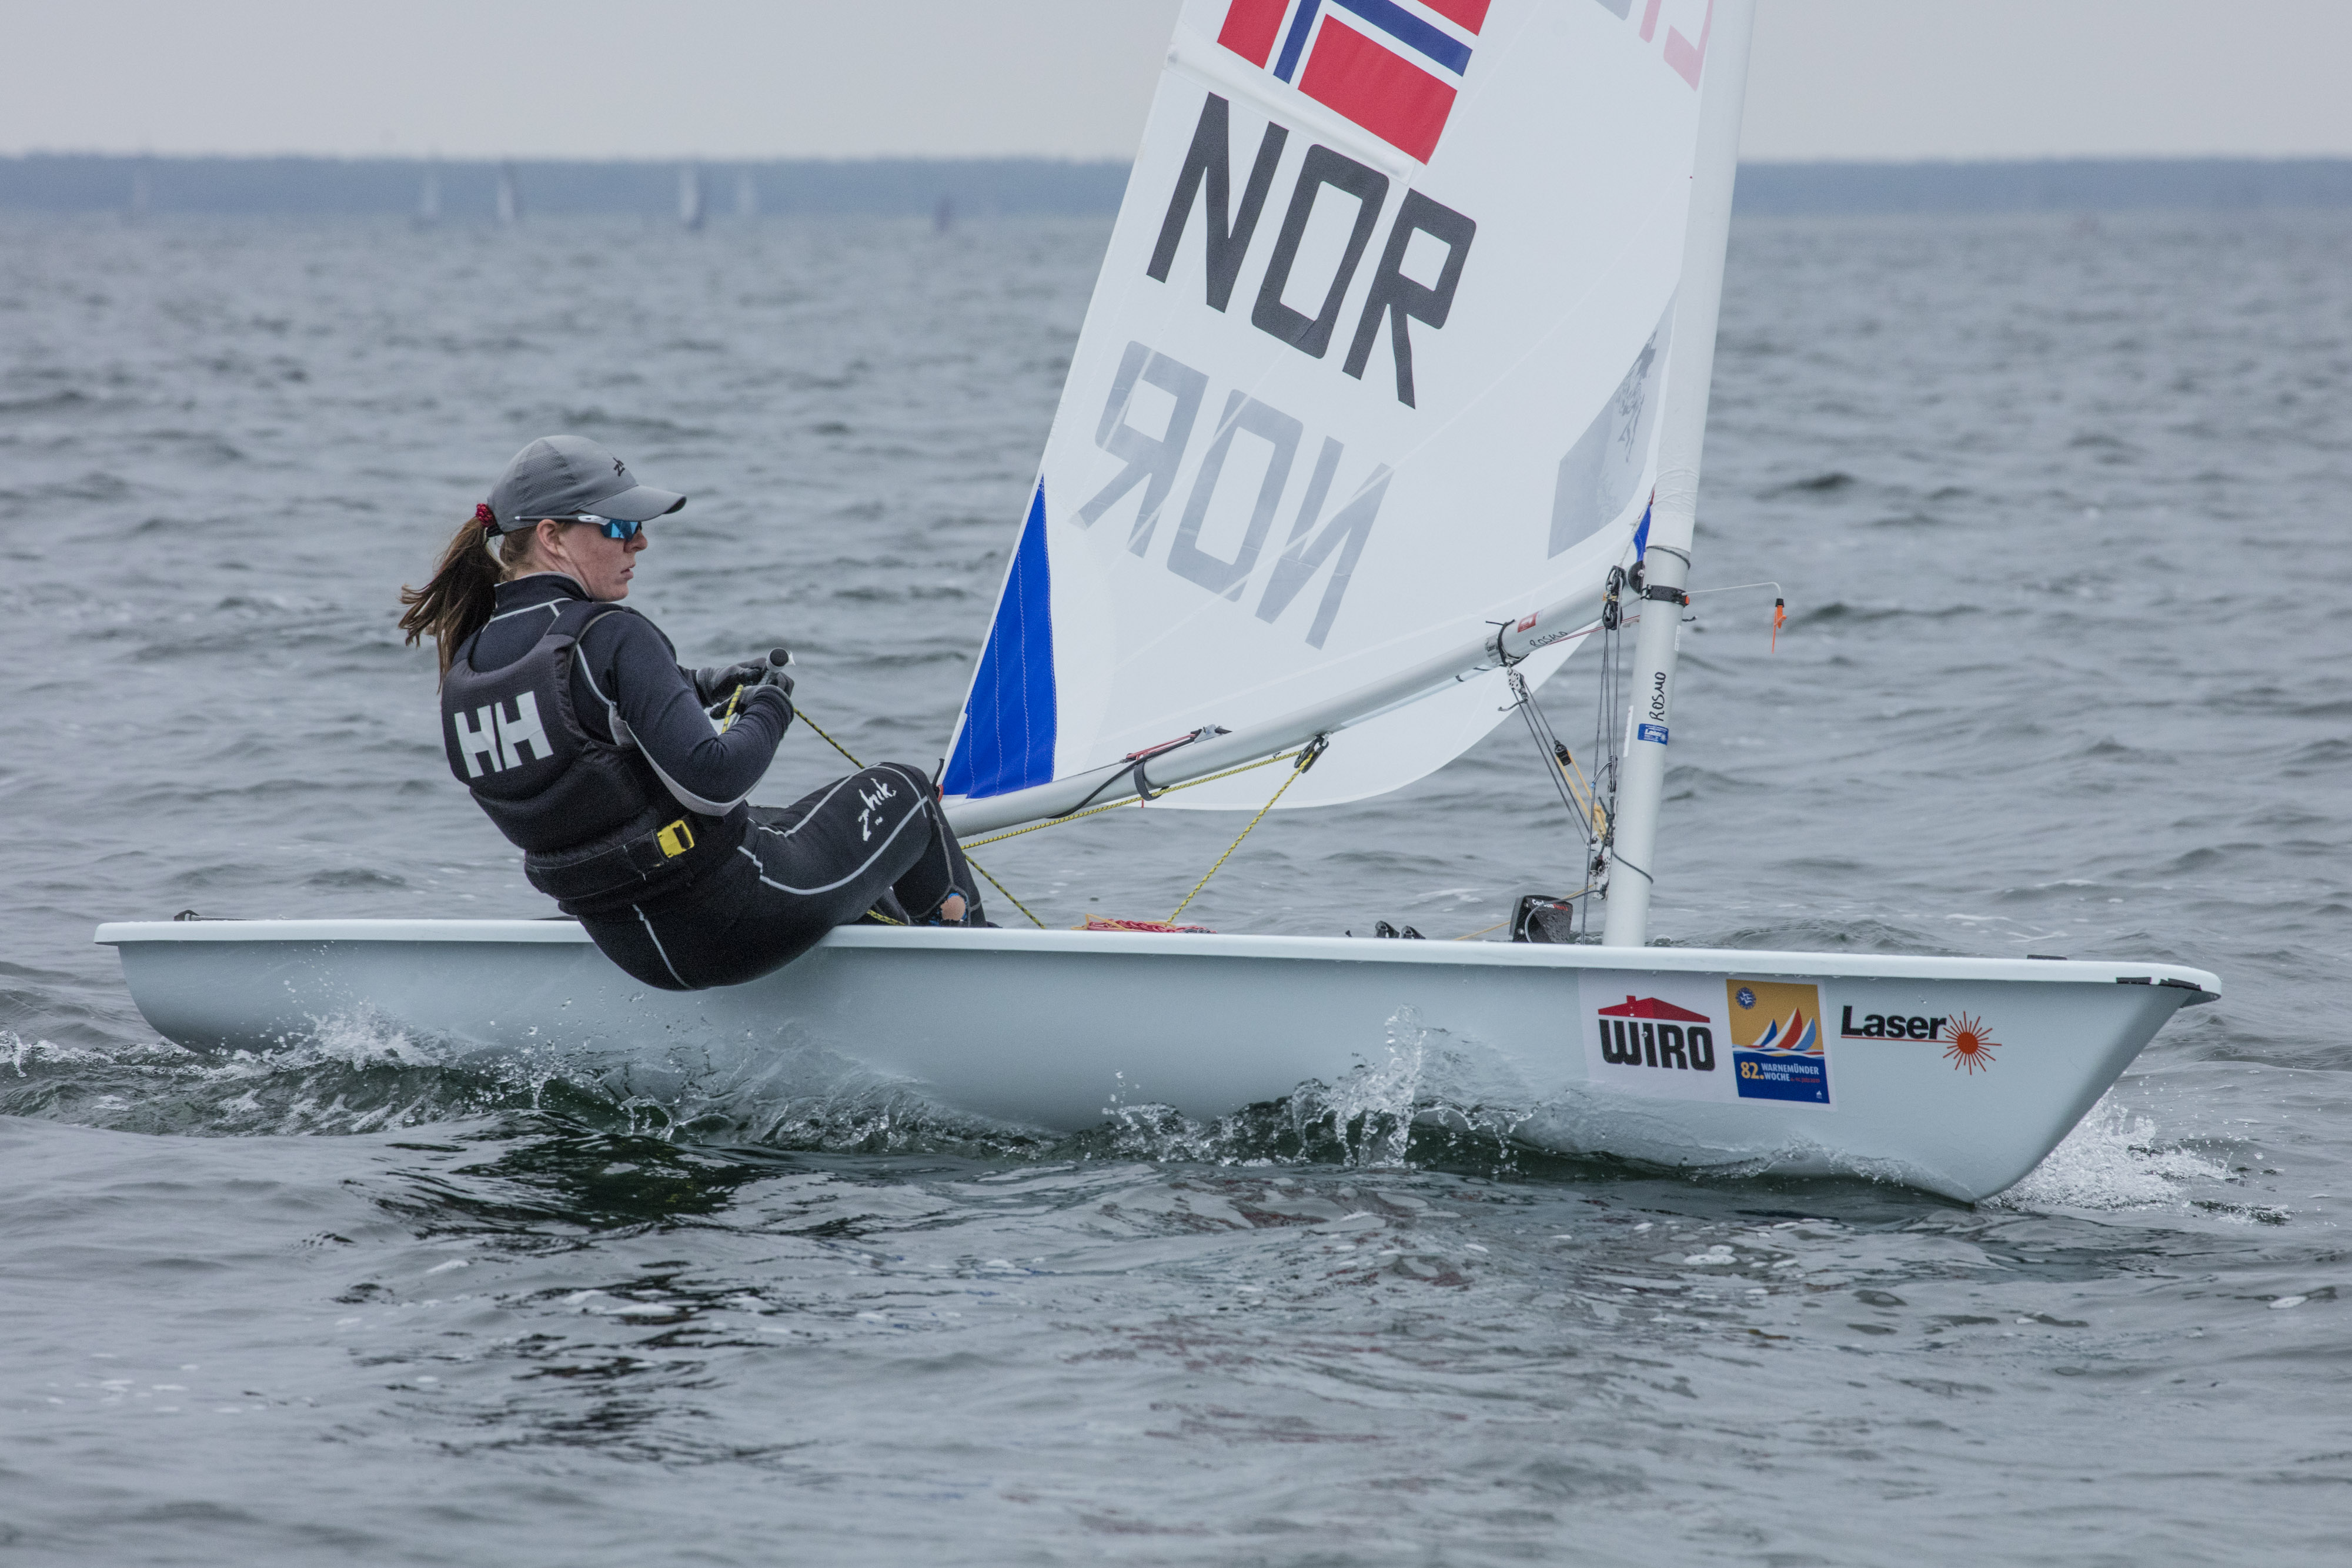 Laser - Europcup 2019 - Warnemünde GER - Final results